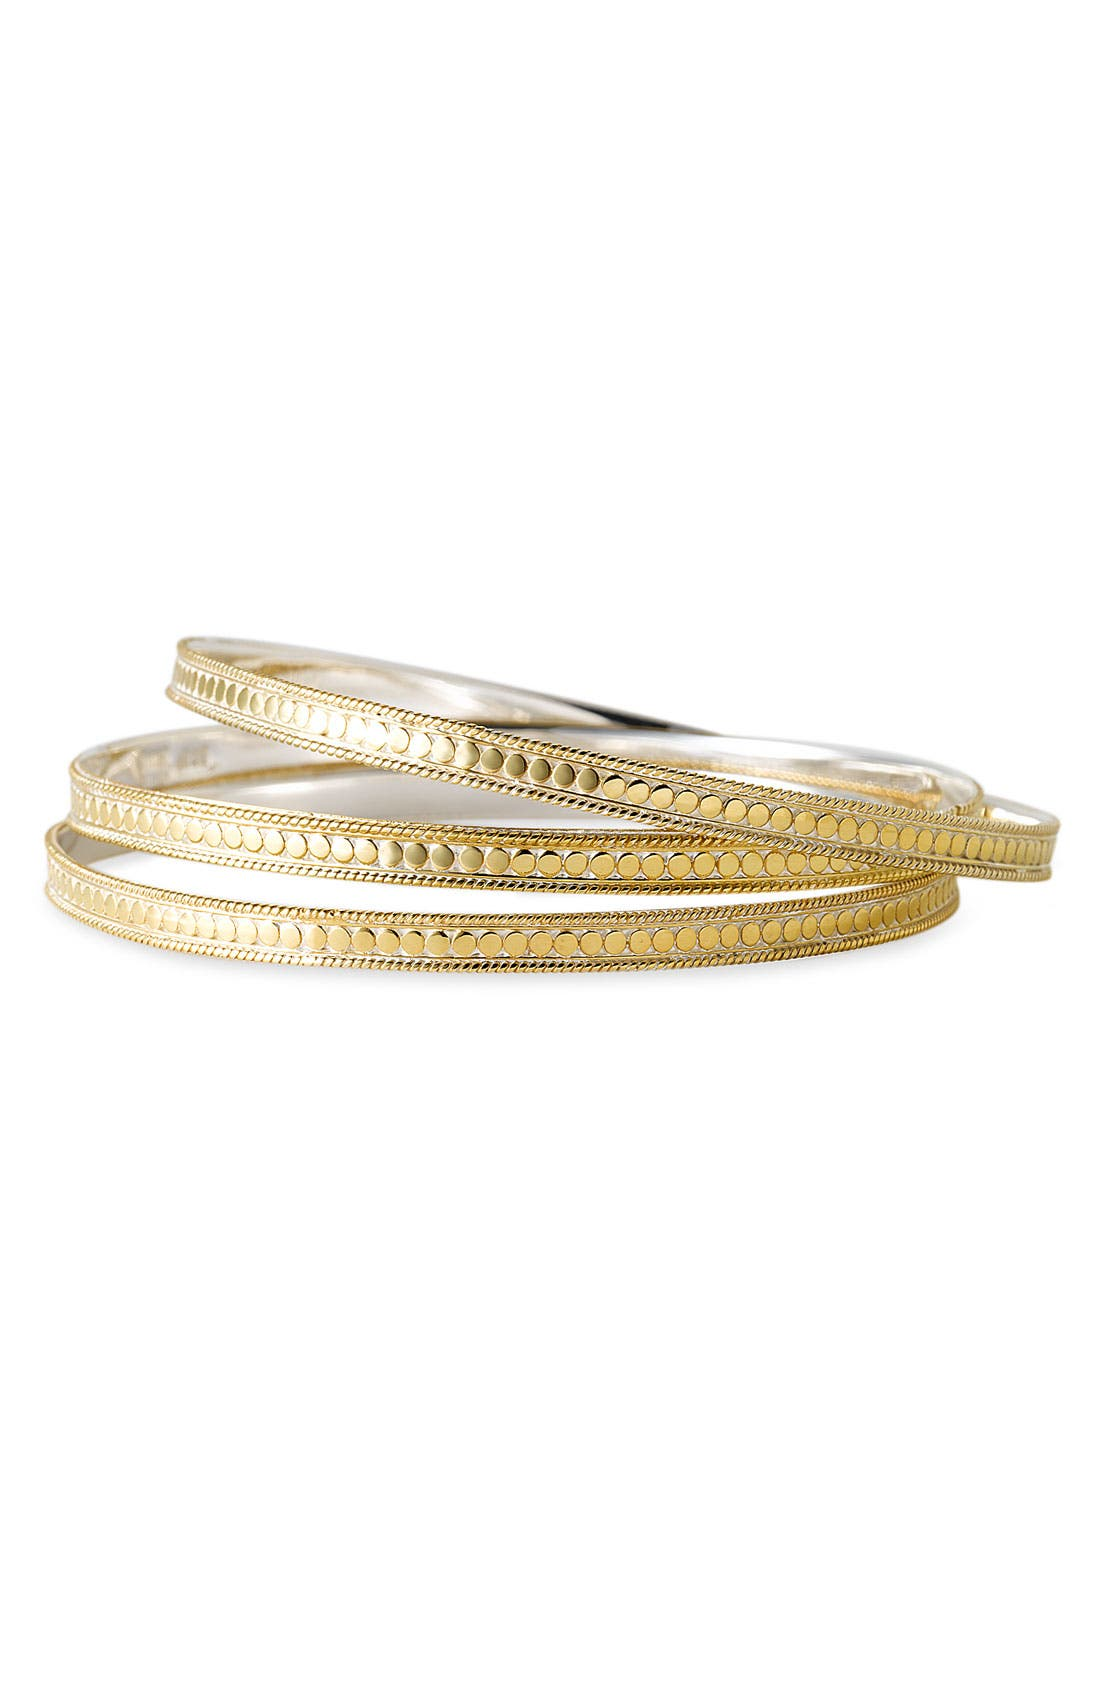 Alternate Image 1 Selected - Anna Beck 'Timor' Stacking Skinny Bangles (Set of 3)